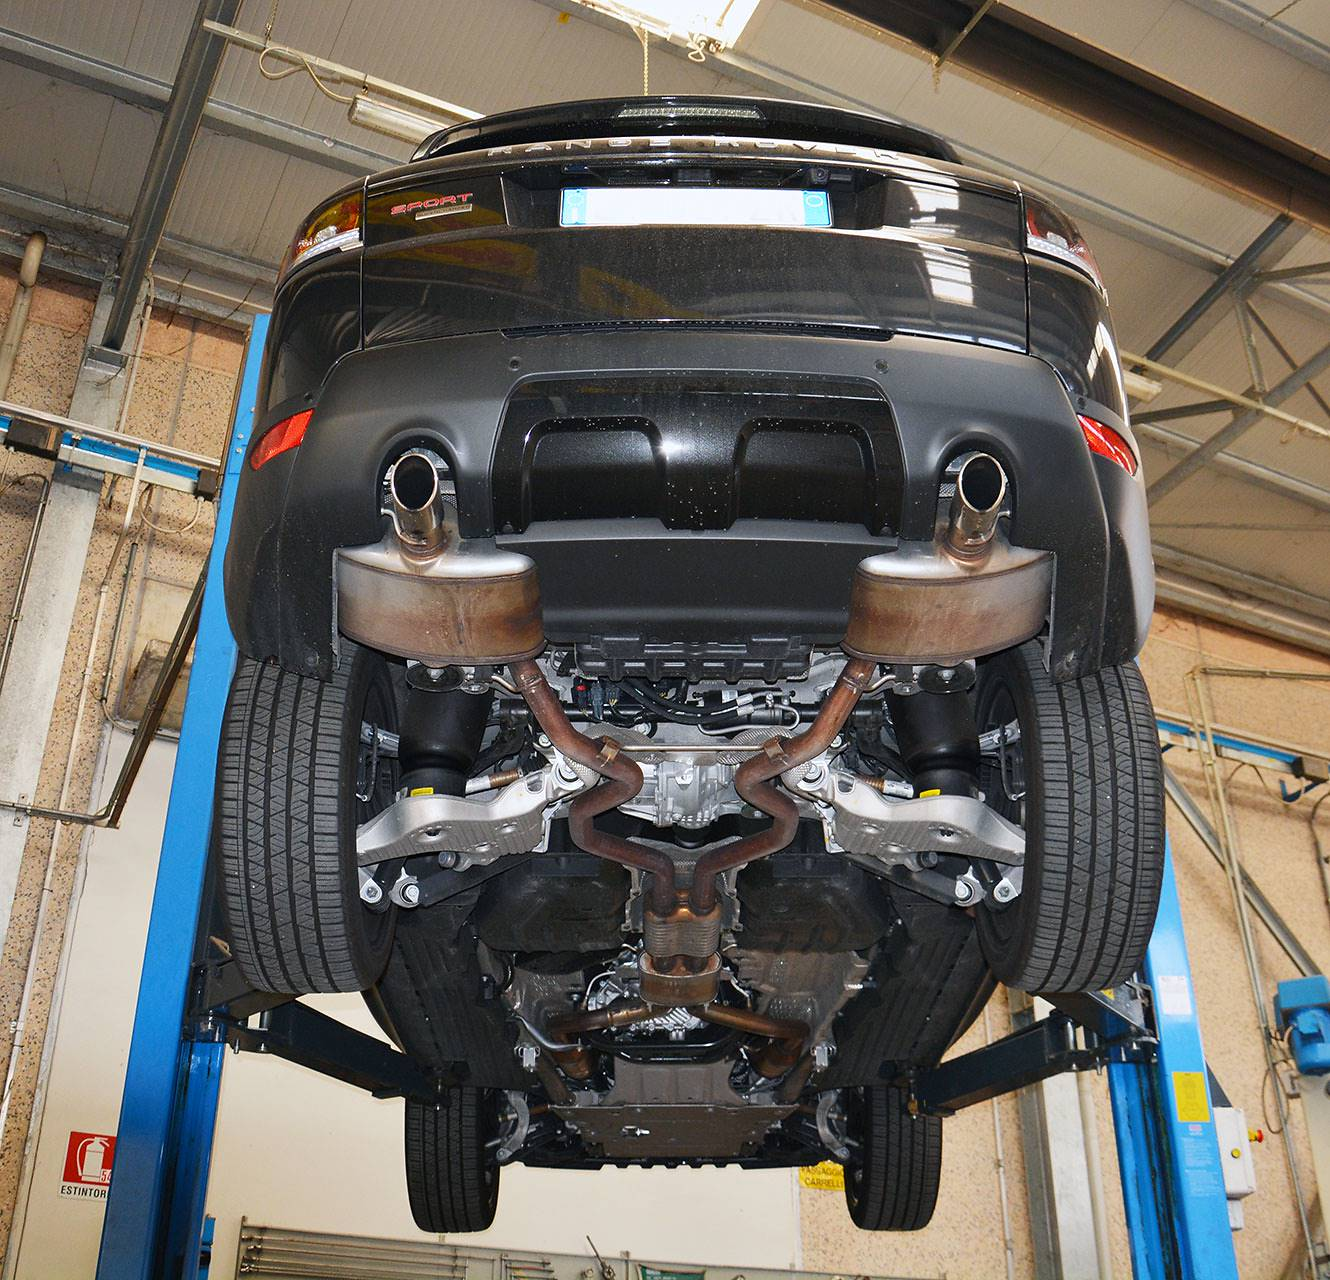 Range Rover Sport mk2 L494 5.0 Supercharged - Sport exhaust development by Supersprint - Stock exhaust